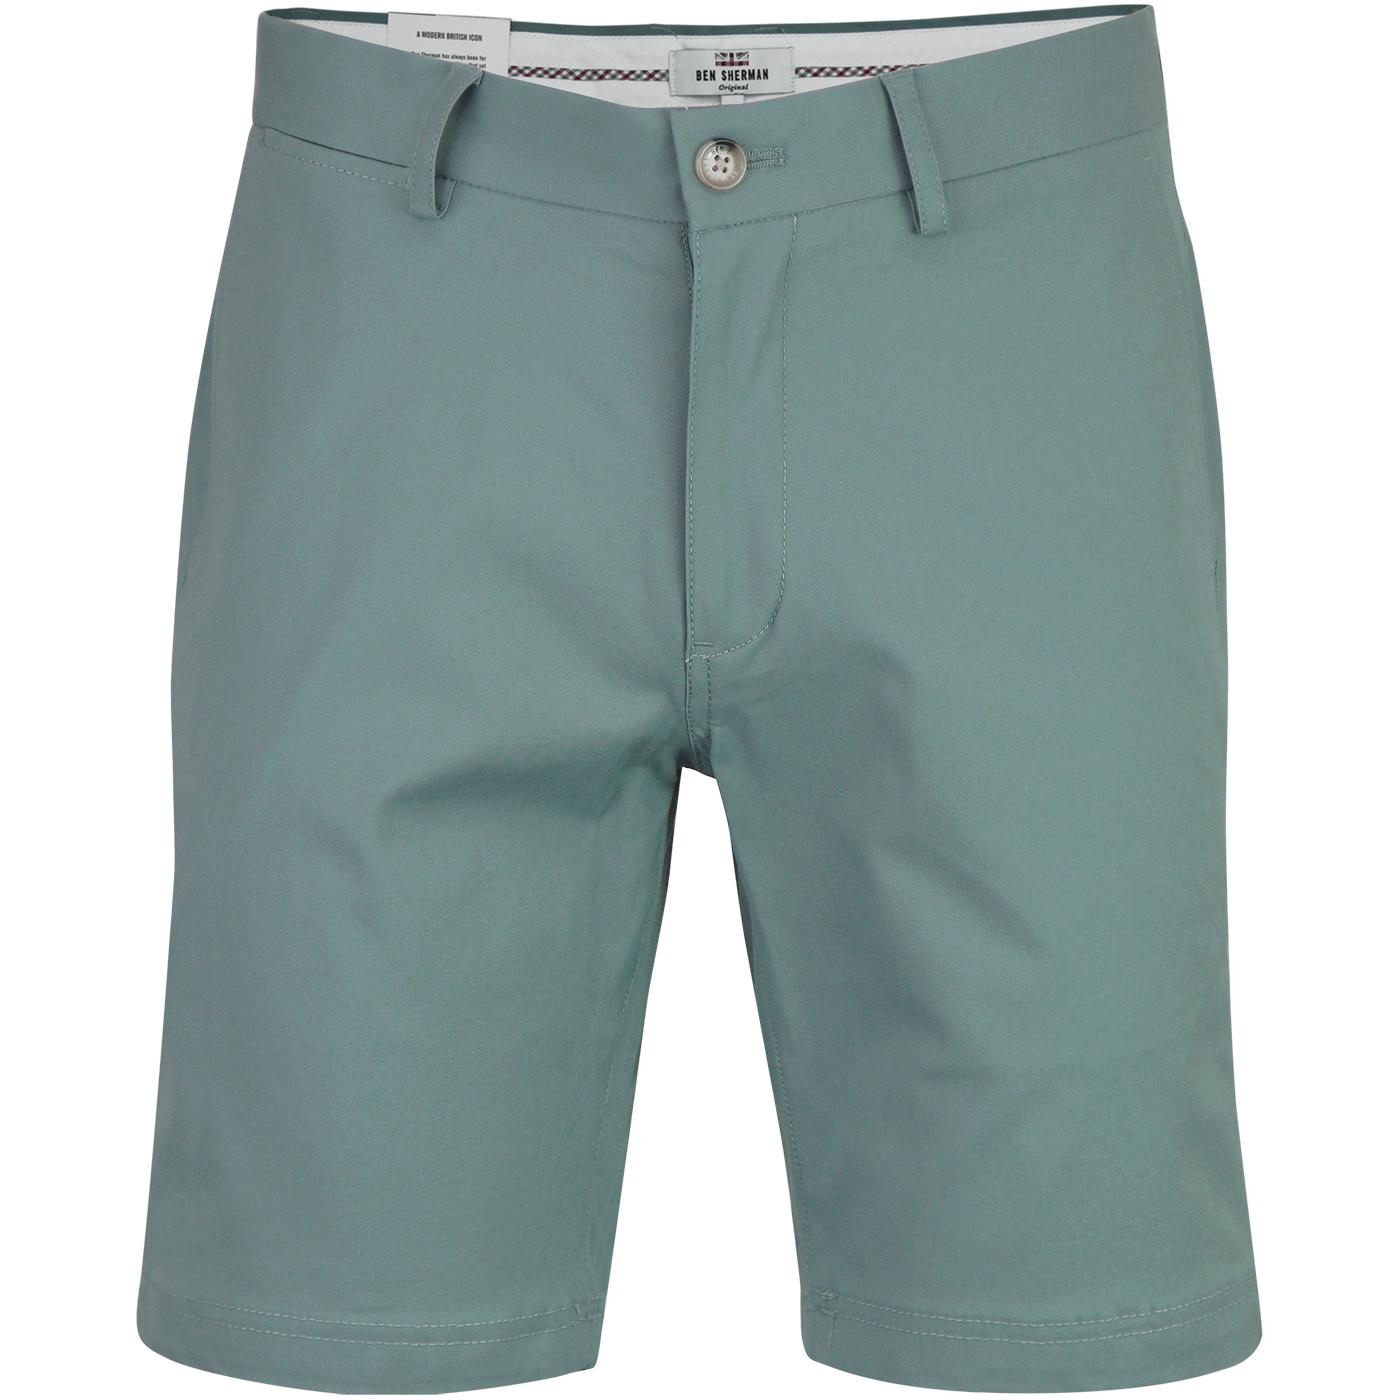 BEN SHERMAN Men's Retro Mod Chino Shorts (Teal)